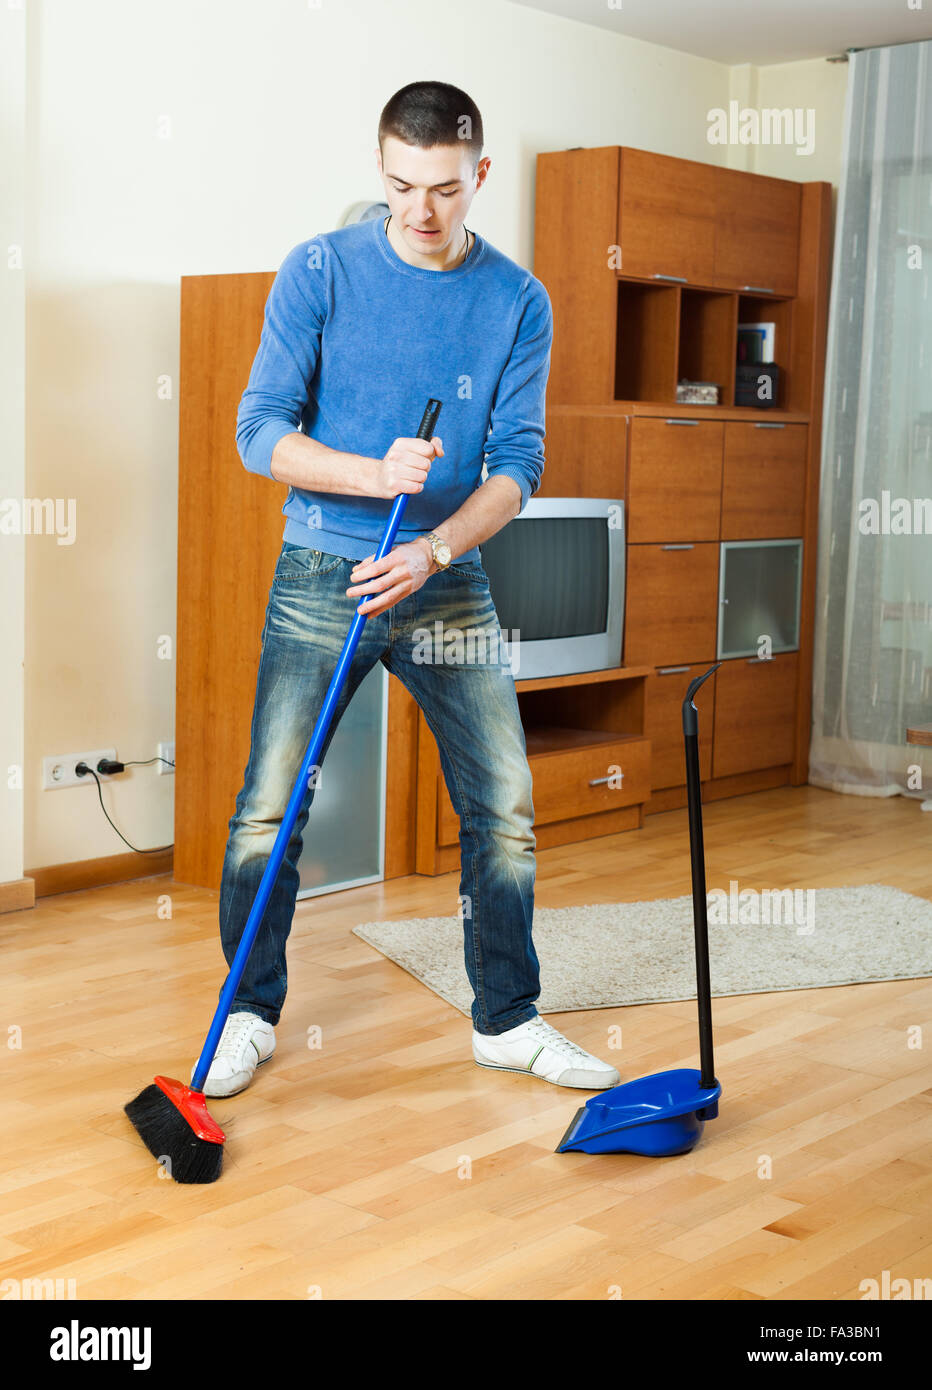 smiling man sweeping the floor in living room at home stock photo alamy https www alamy com stock photo smiling man sweeping the floor in living room at home 92273469 html